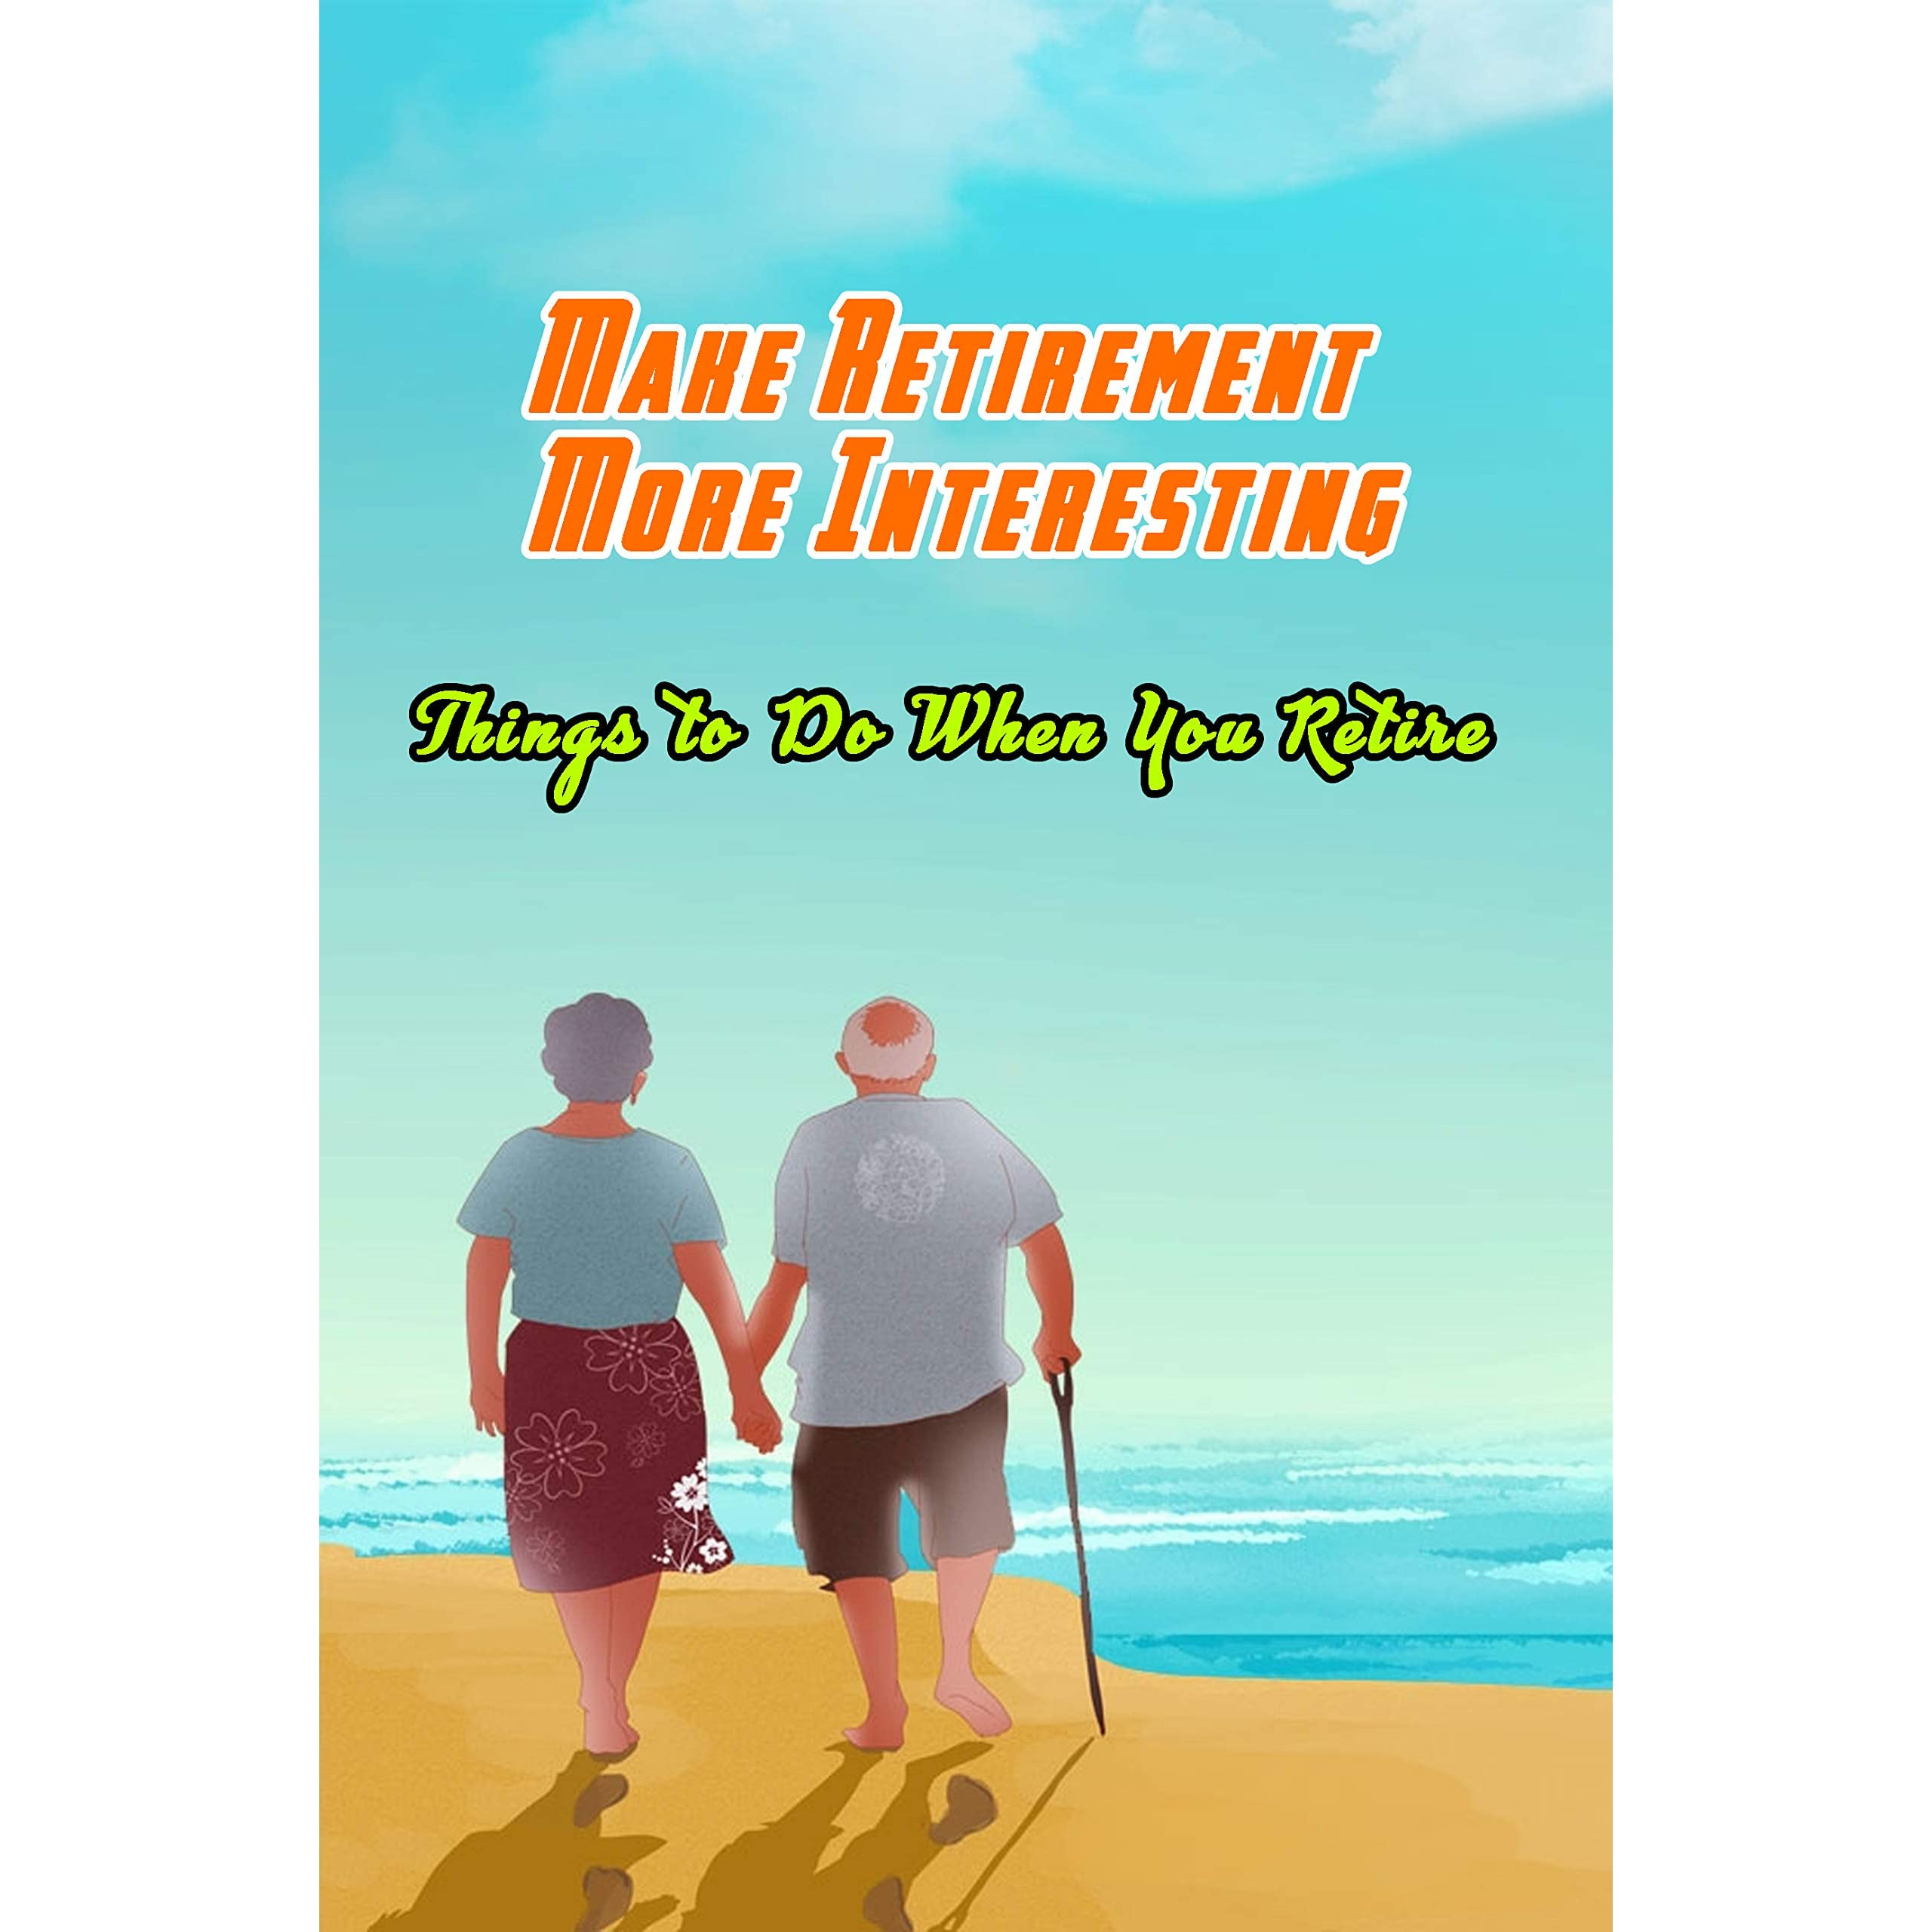 Make Retirement More Interesting Things to Do When You Retire ...